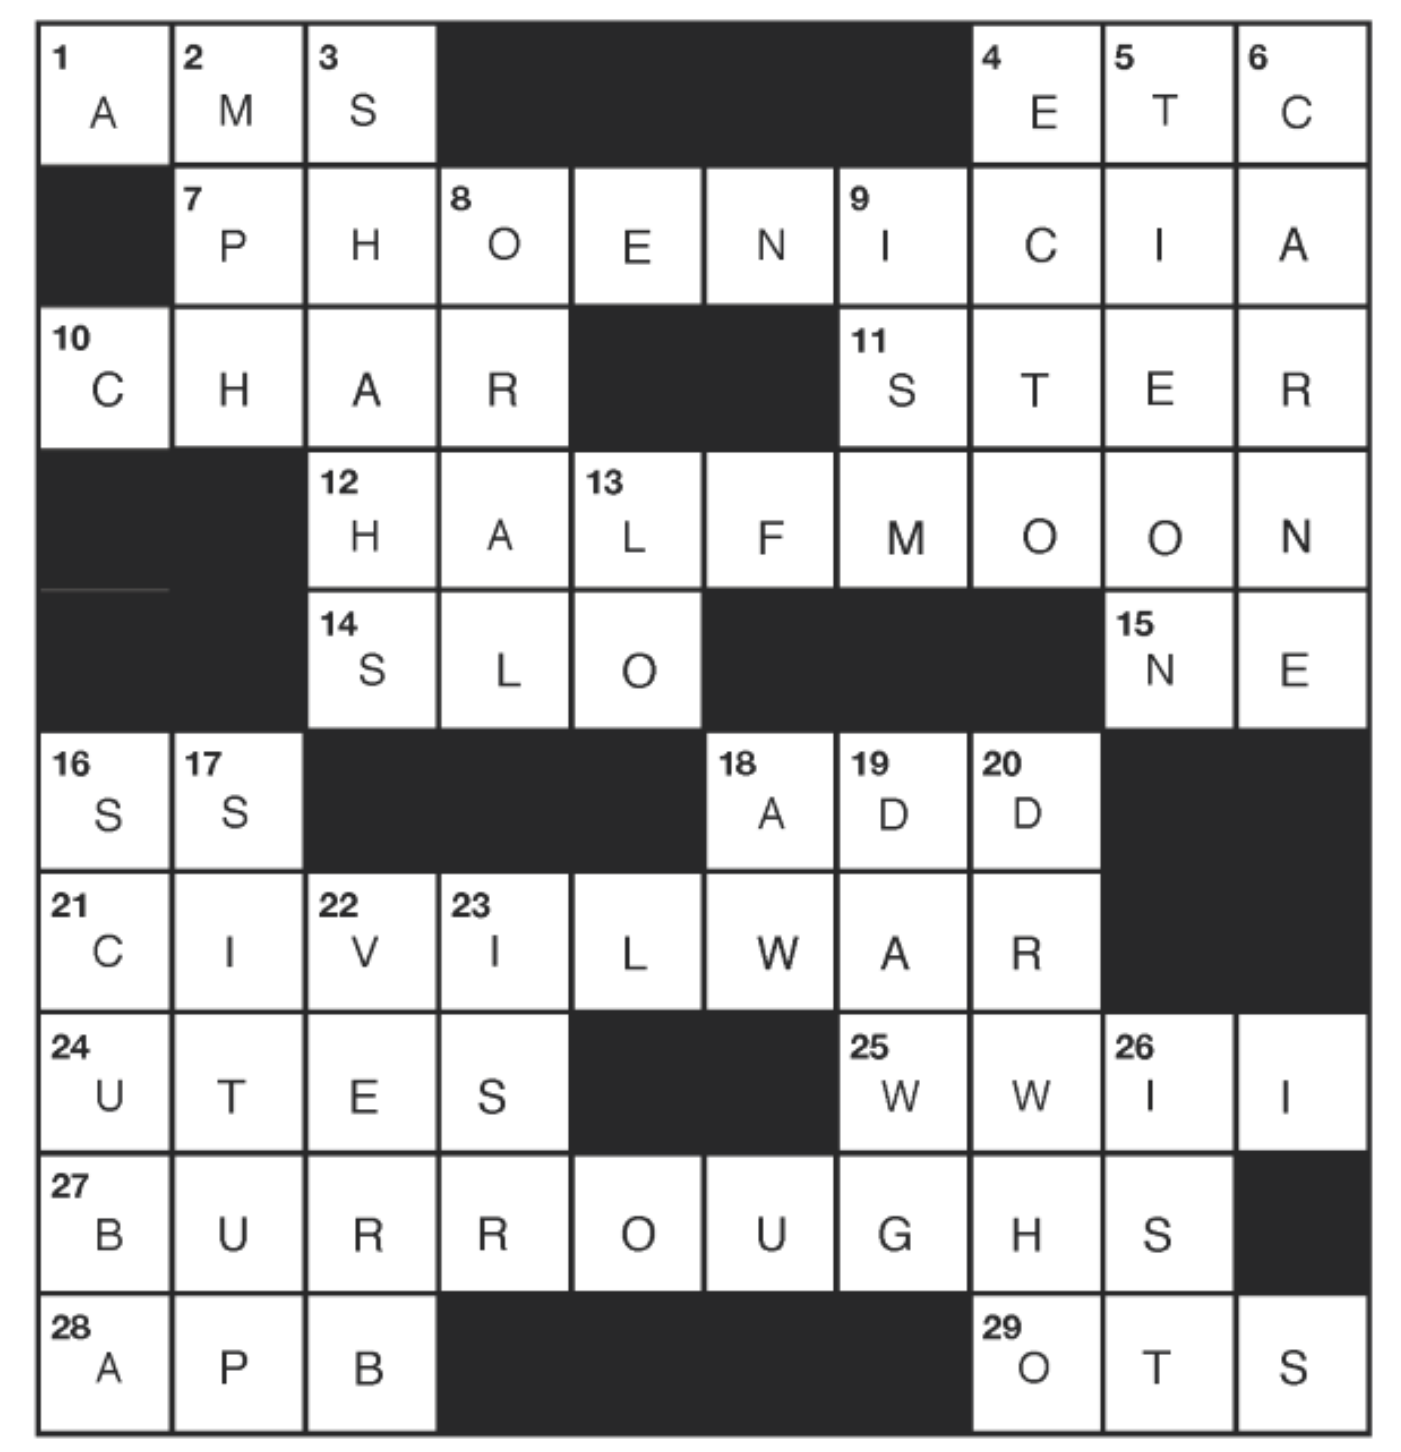 JUNE CATSKILL CROSSWORD Answers - July 2020